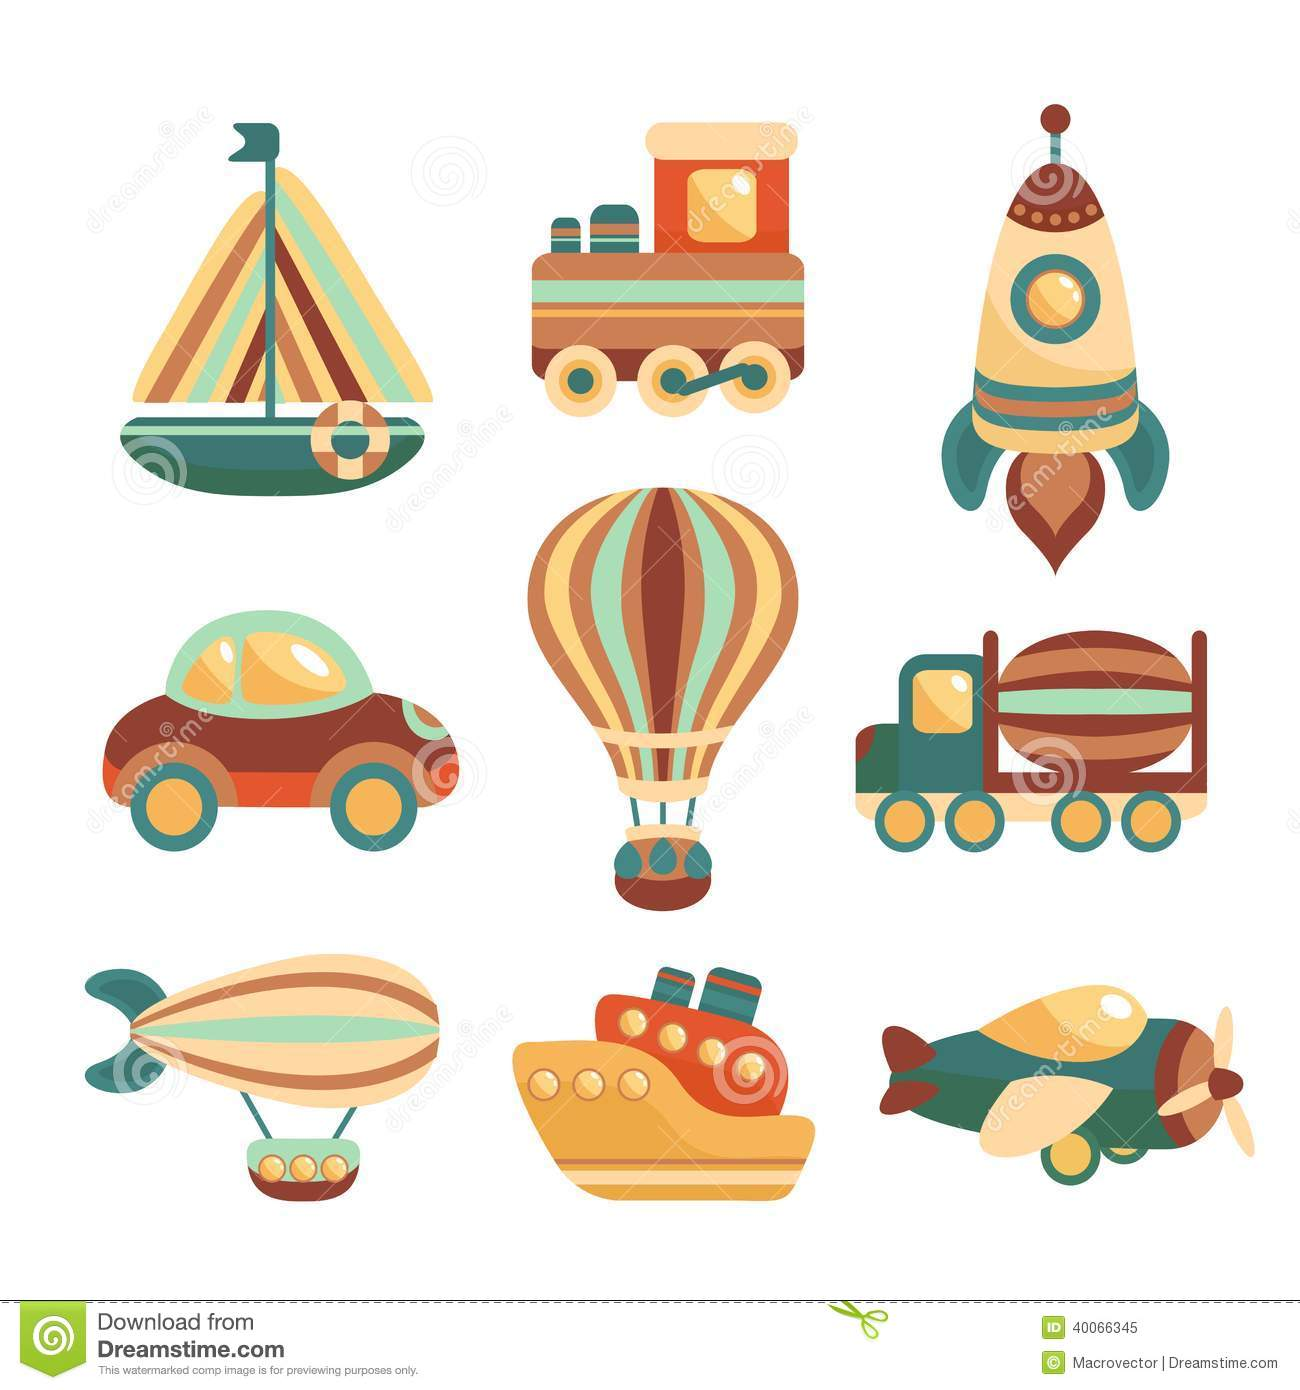 Toy Transport Colored Cartoon Icons Set With Yacht Train Space Rocket